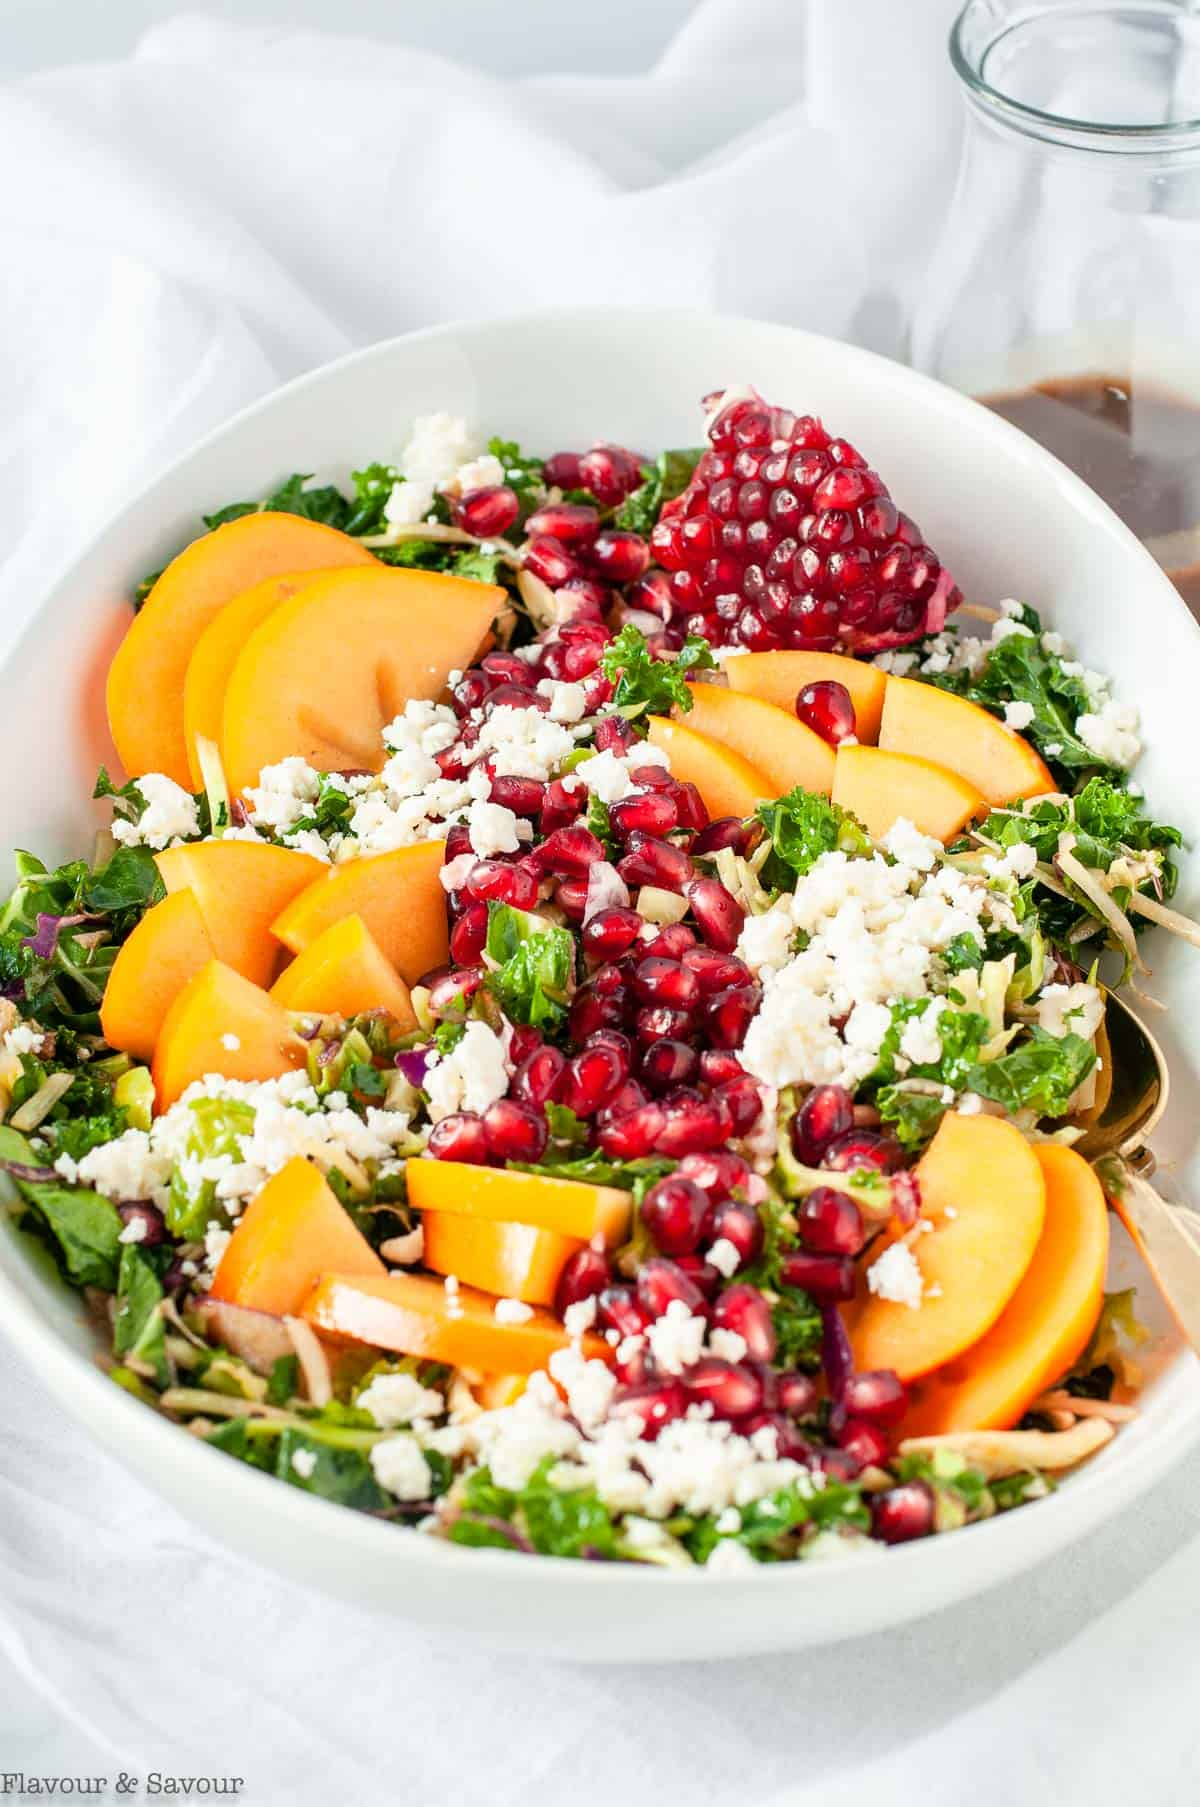 Winter Persimmon Kale Salad with pomegranate and feta